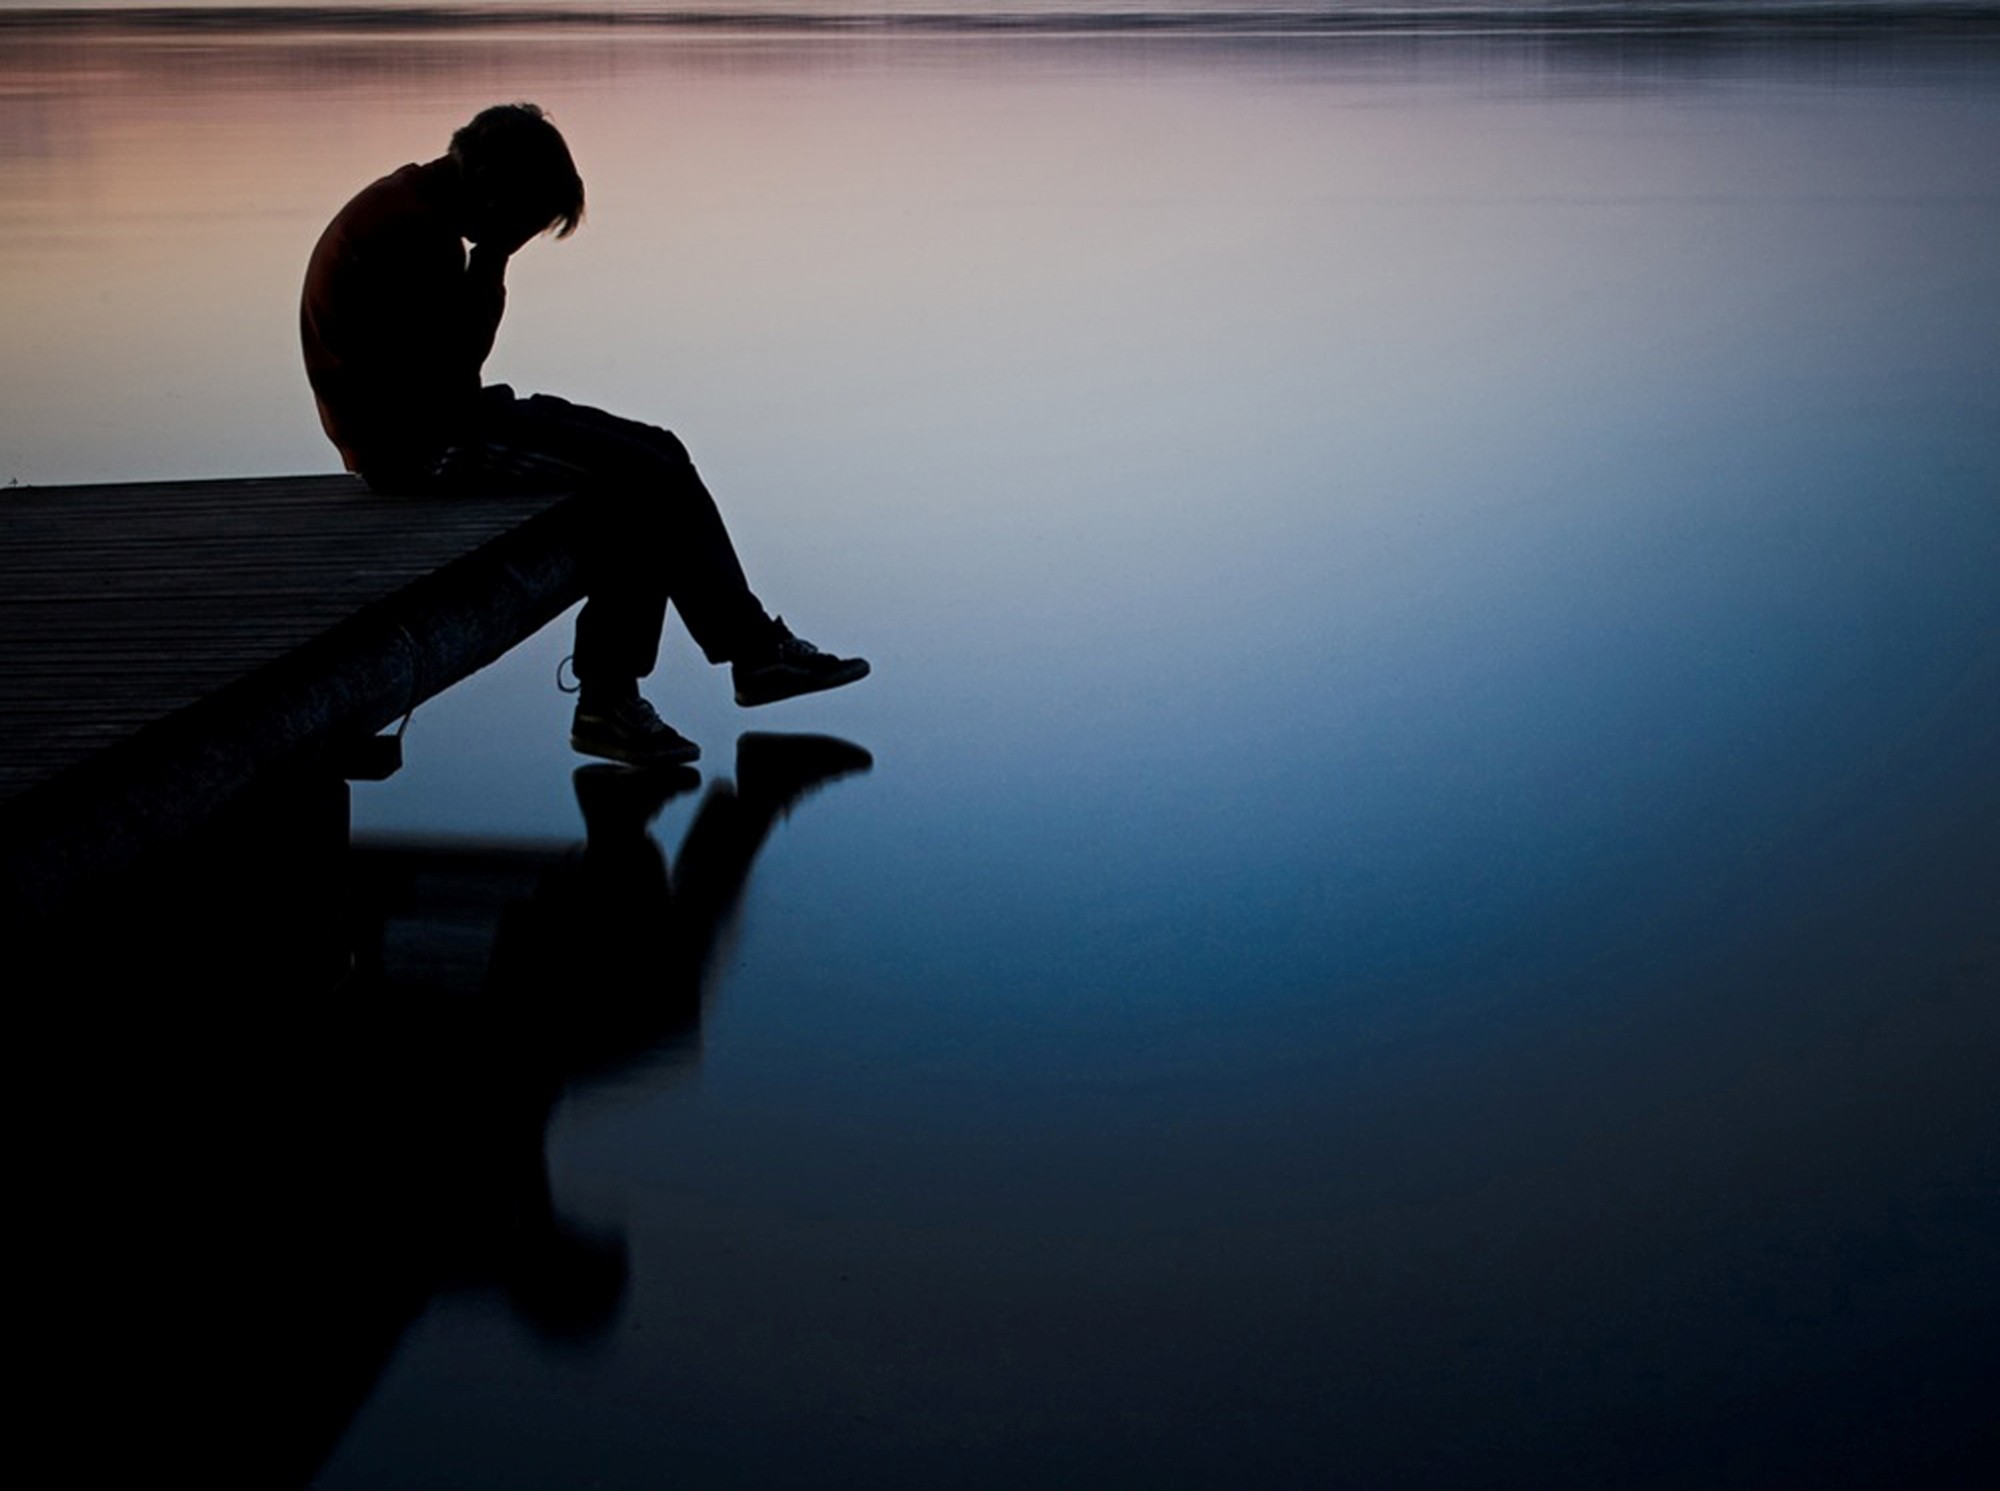 31 Sad Wallpapers Download Free Cool Full Hd Backgrounds For